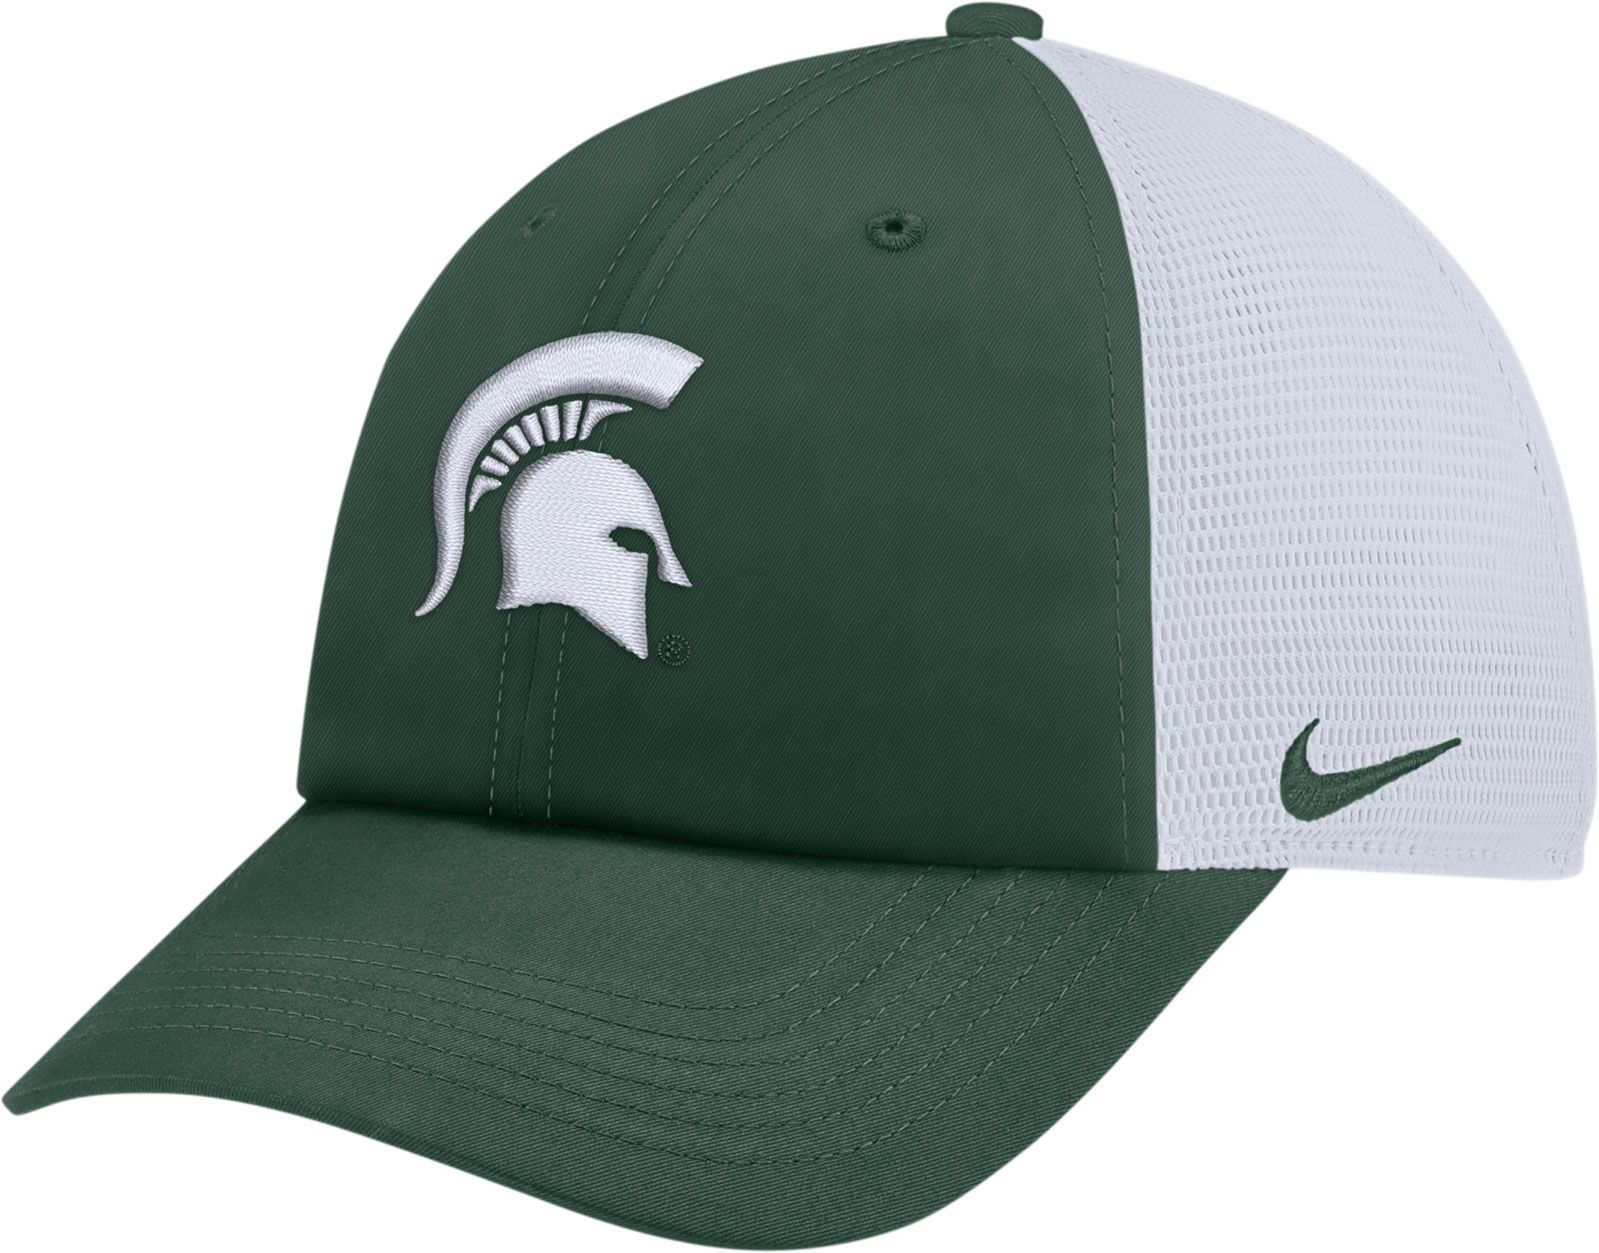 info for 2b3dc f807d ... cheap nike mens michigan state spartans green heritage86 adjustable  trucker hat 76cb8 ccbf4